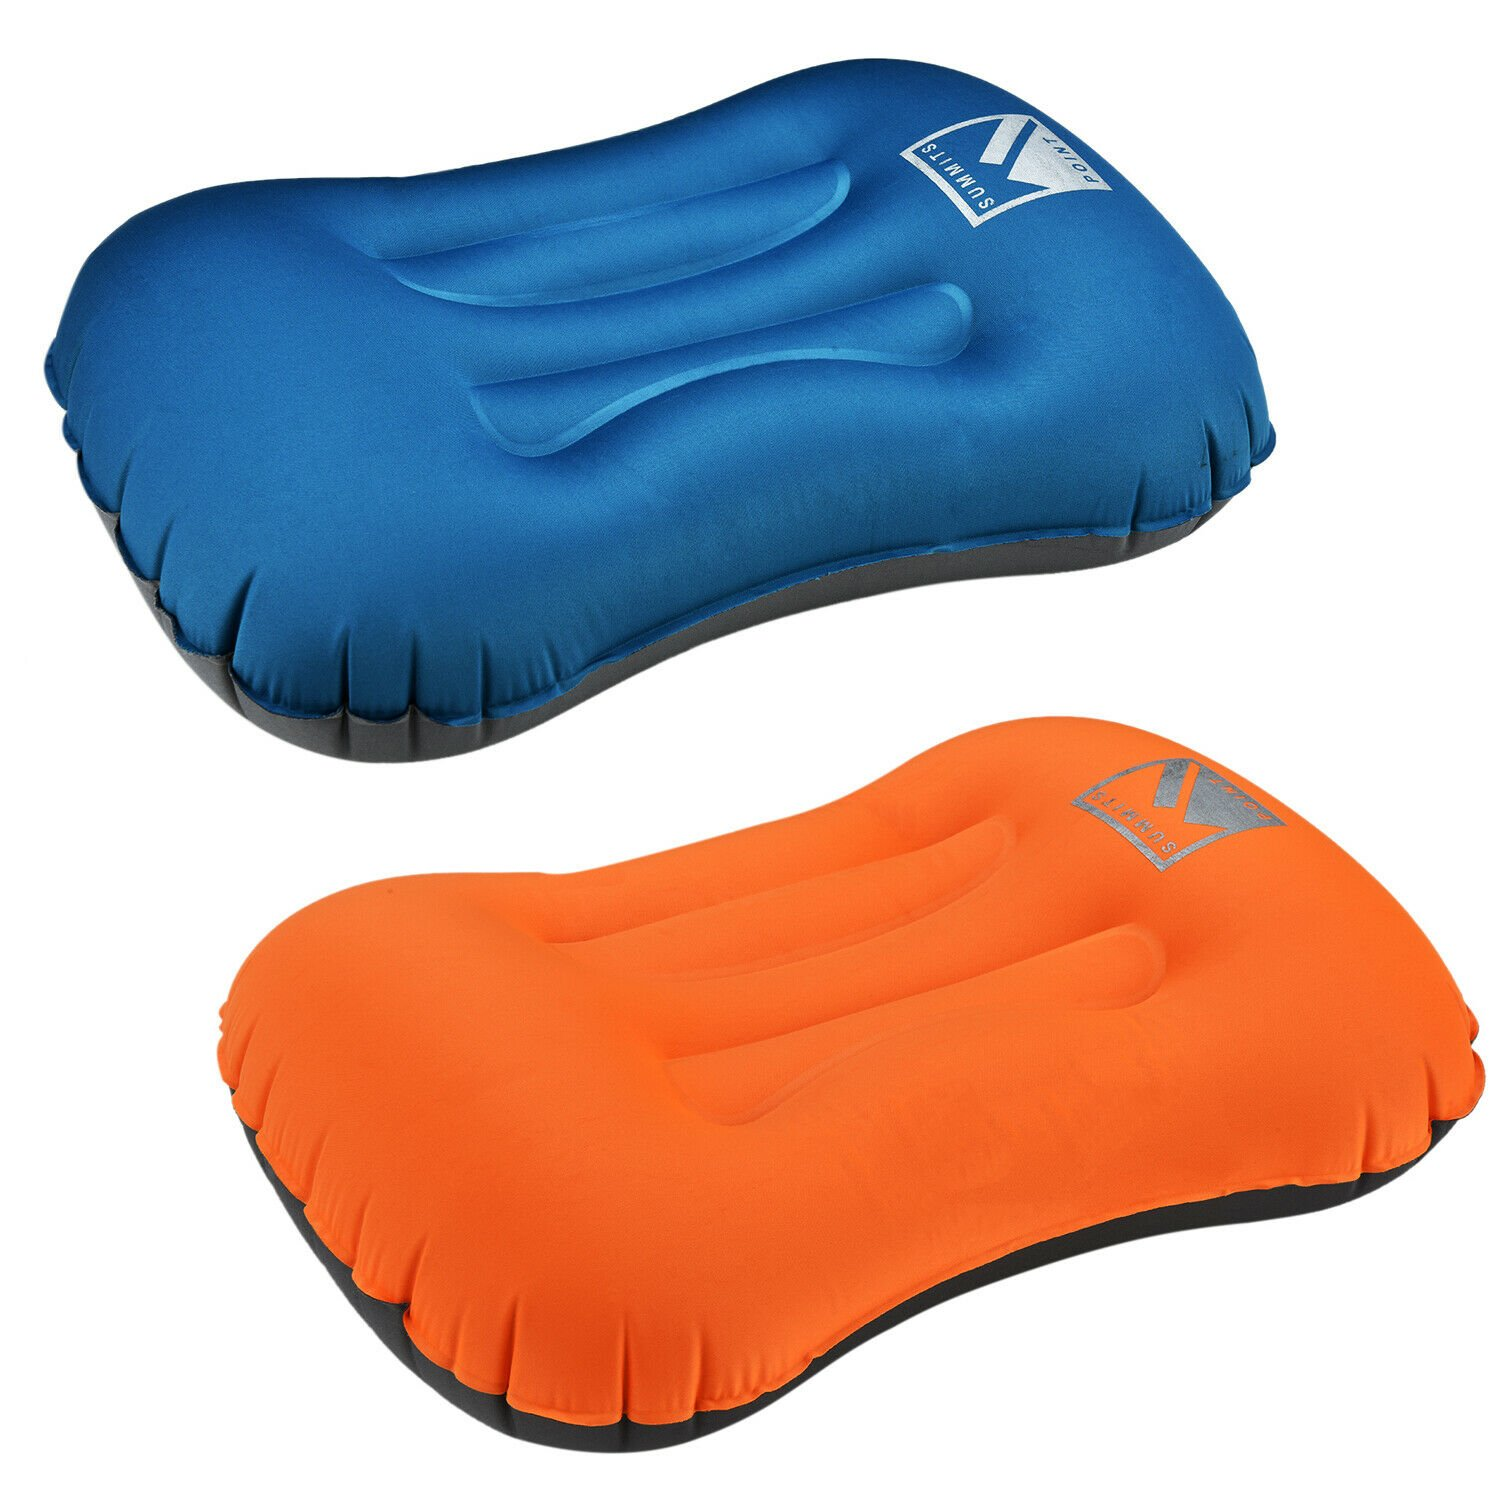 Air Pillow Inflatable Cushion Portable Head Rest Compact Travel Campin...